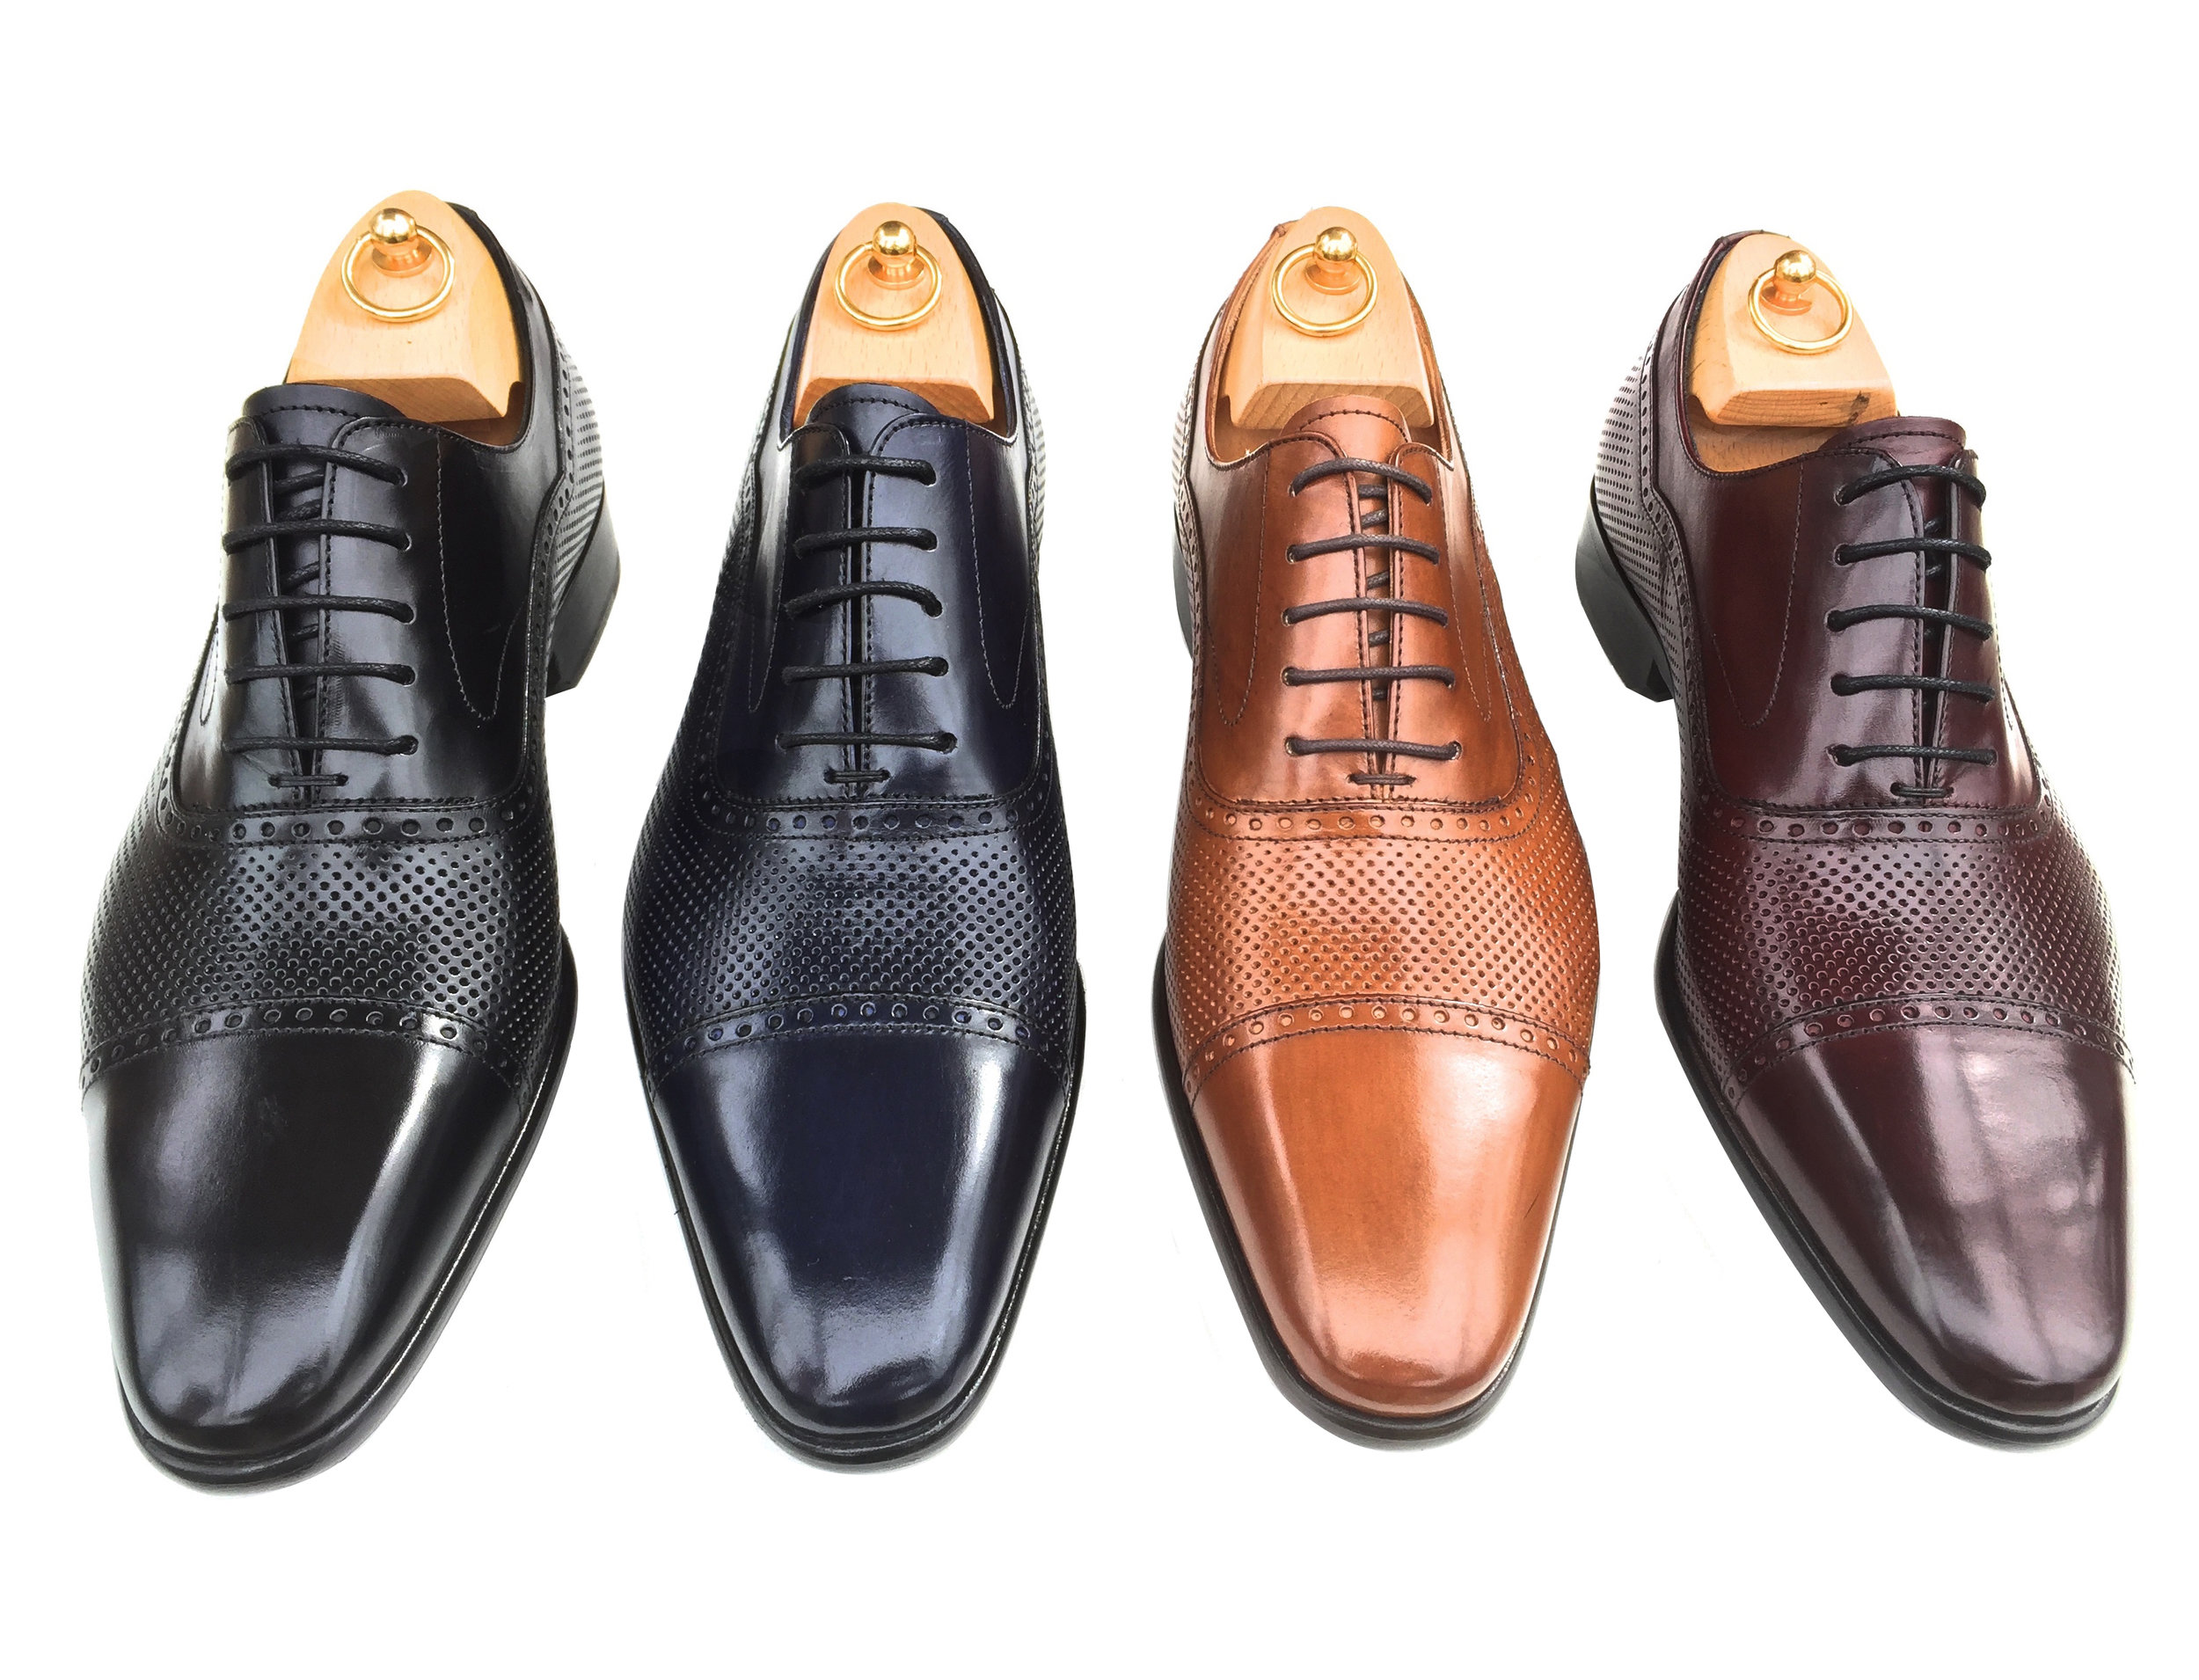 Z192: Navy, Cognac, Black, Burgundy  Parma Calf Perforated Cap Toe  Sizes available: 8-14, including half sizes; 15-18, full sizes only